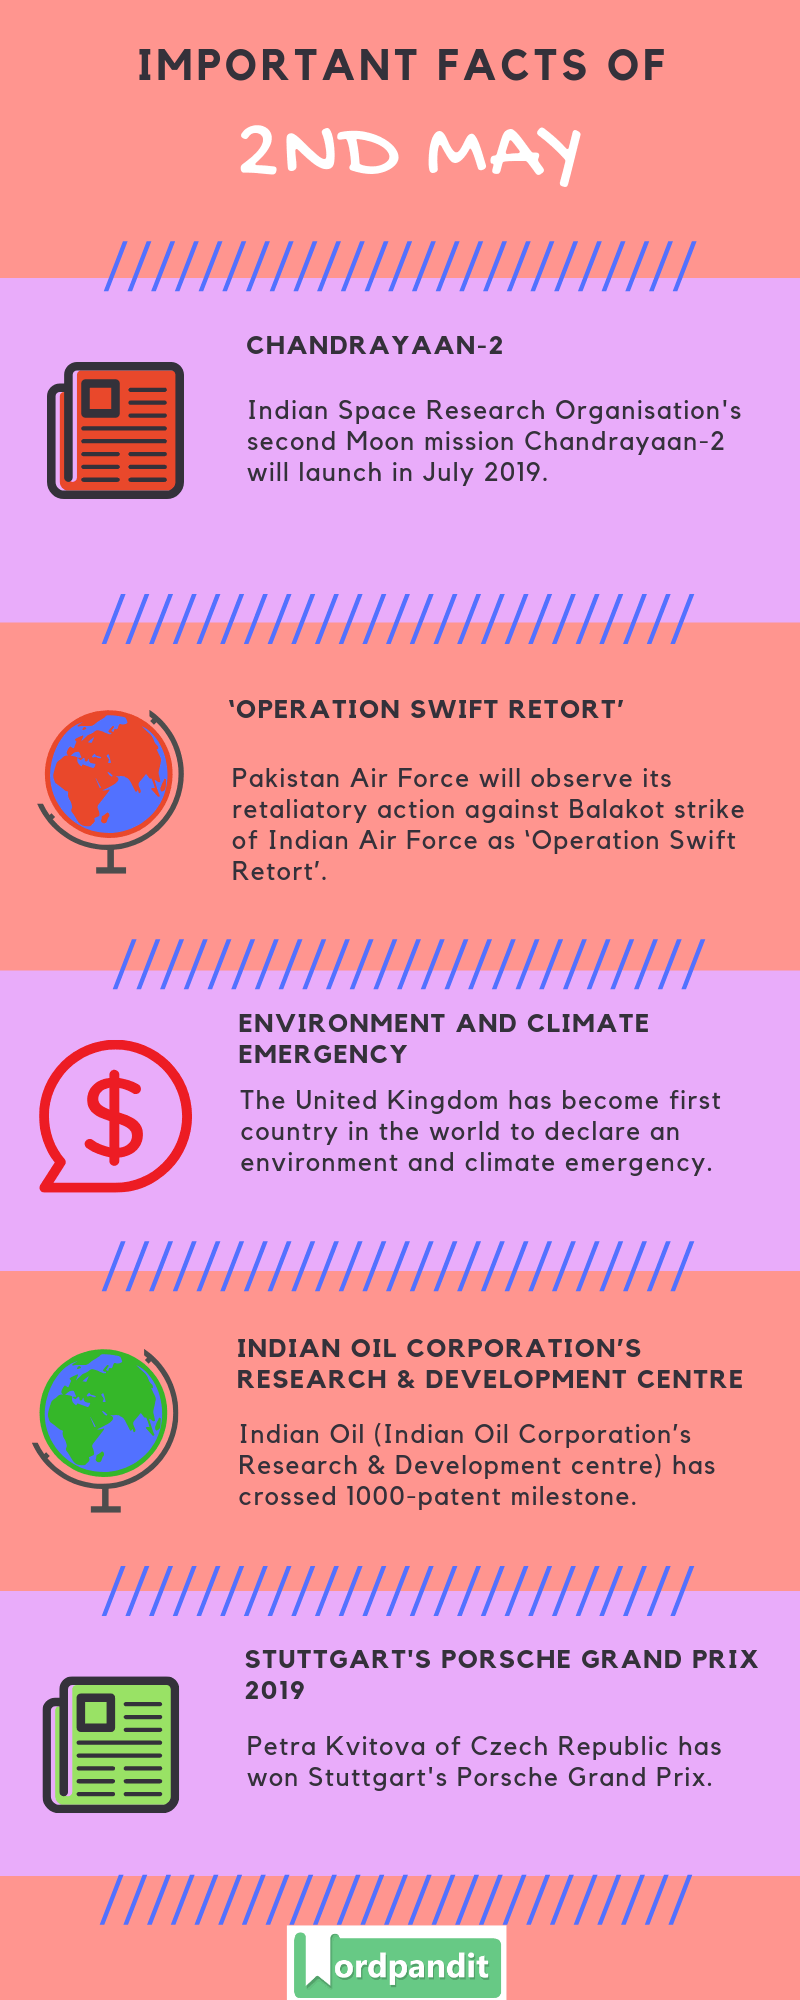 Daily Current Affairs 2 May 2019 Current Affairs Quiz 2 May 2019 Current Affairs Infographic